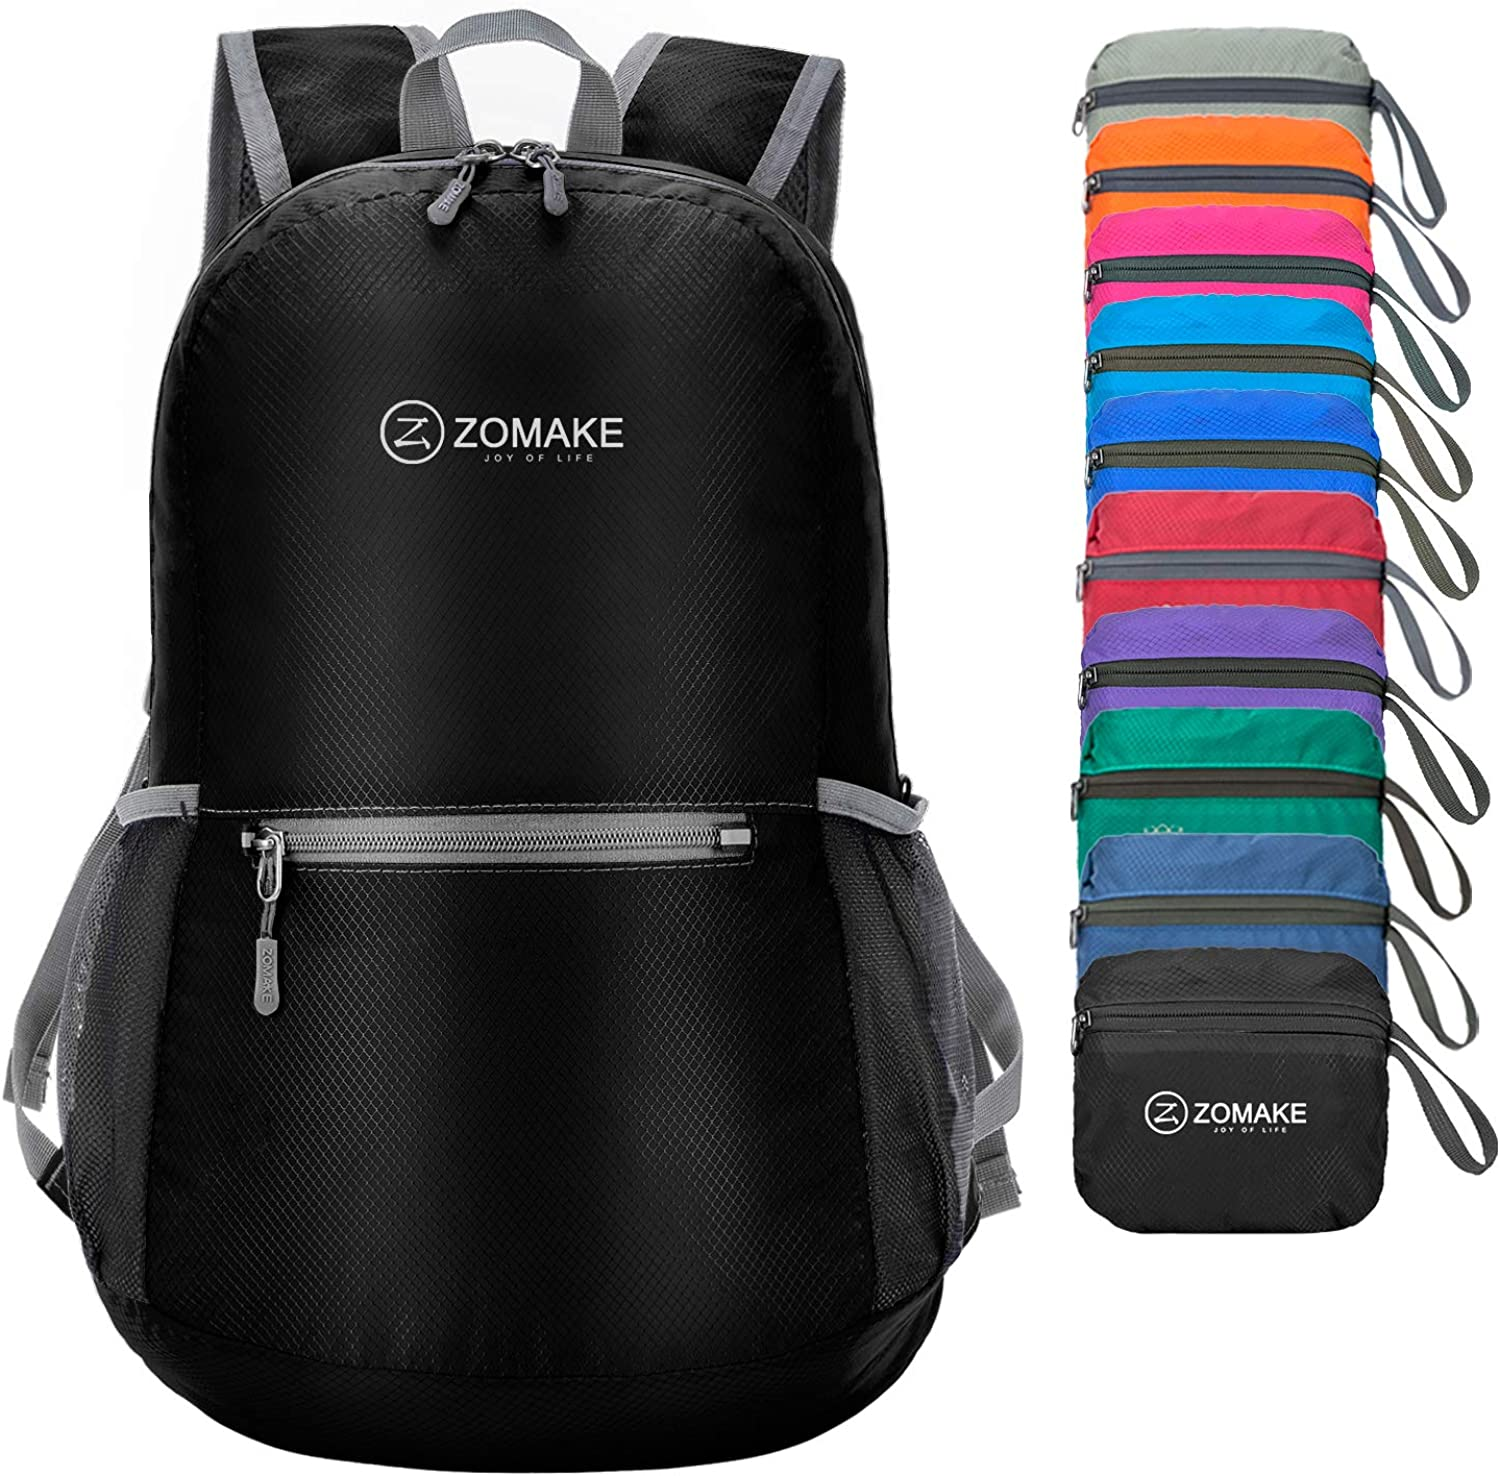 ZOMAKE Ultra Lightweight Packable Backpack Water Resistant Hiking Daypack, Small Backpack Handy Foldable Camping Outdoor Backpack Little Bag : Sports & Outdoors